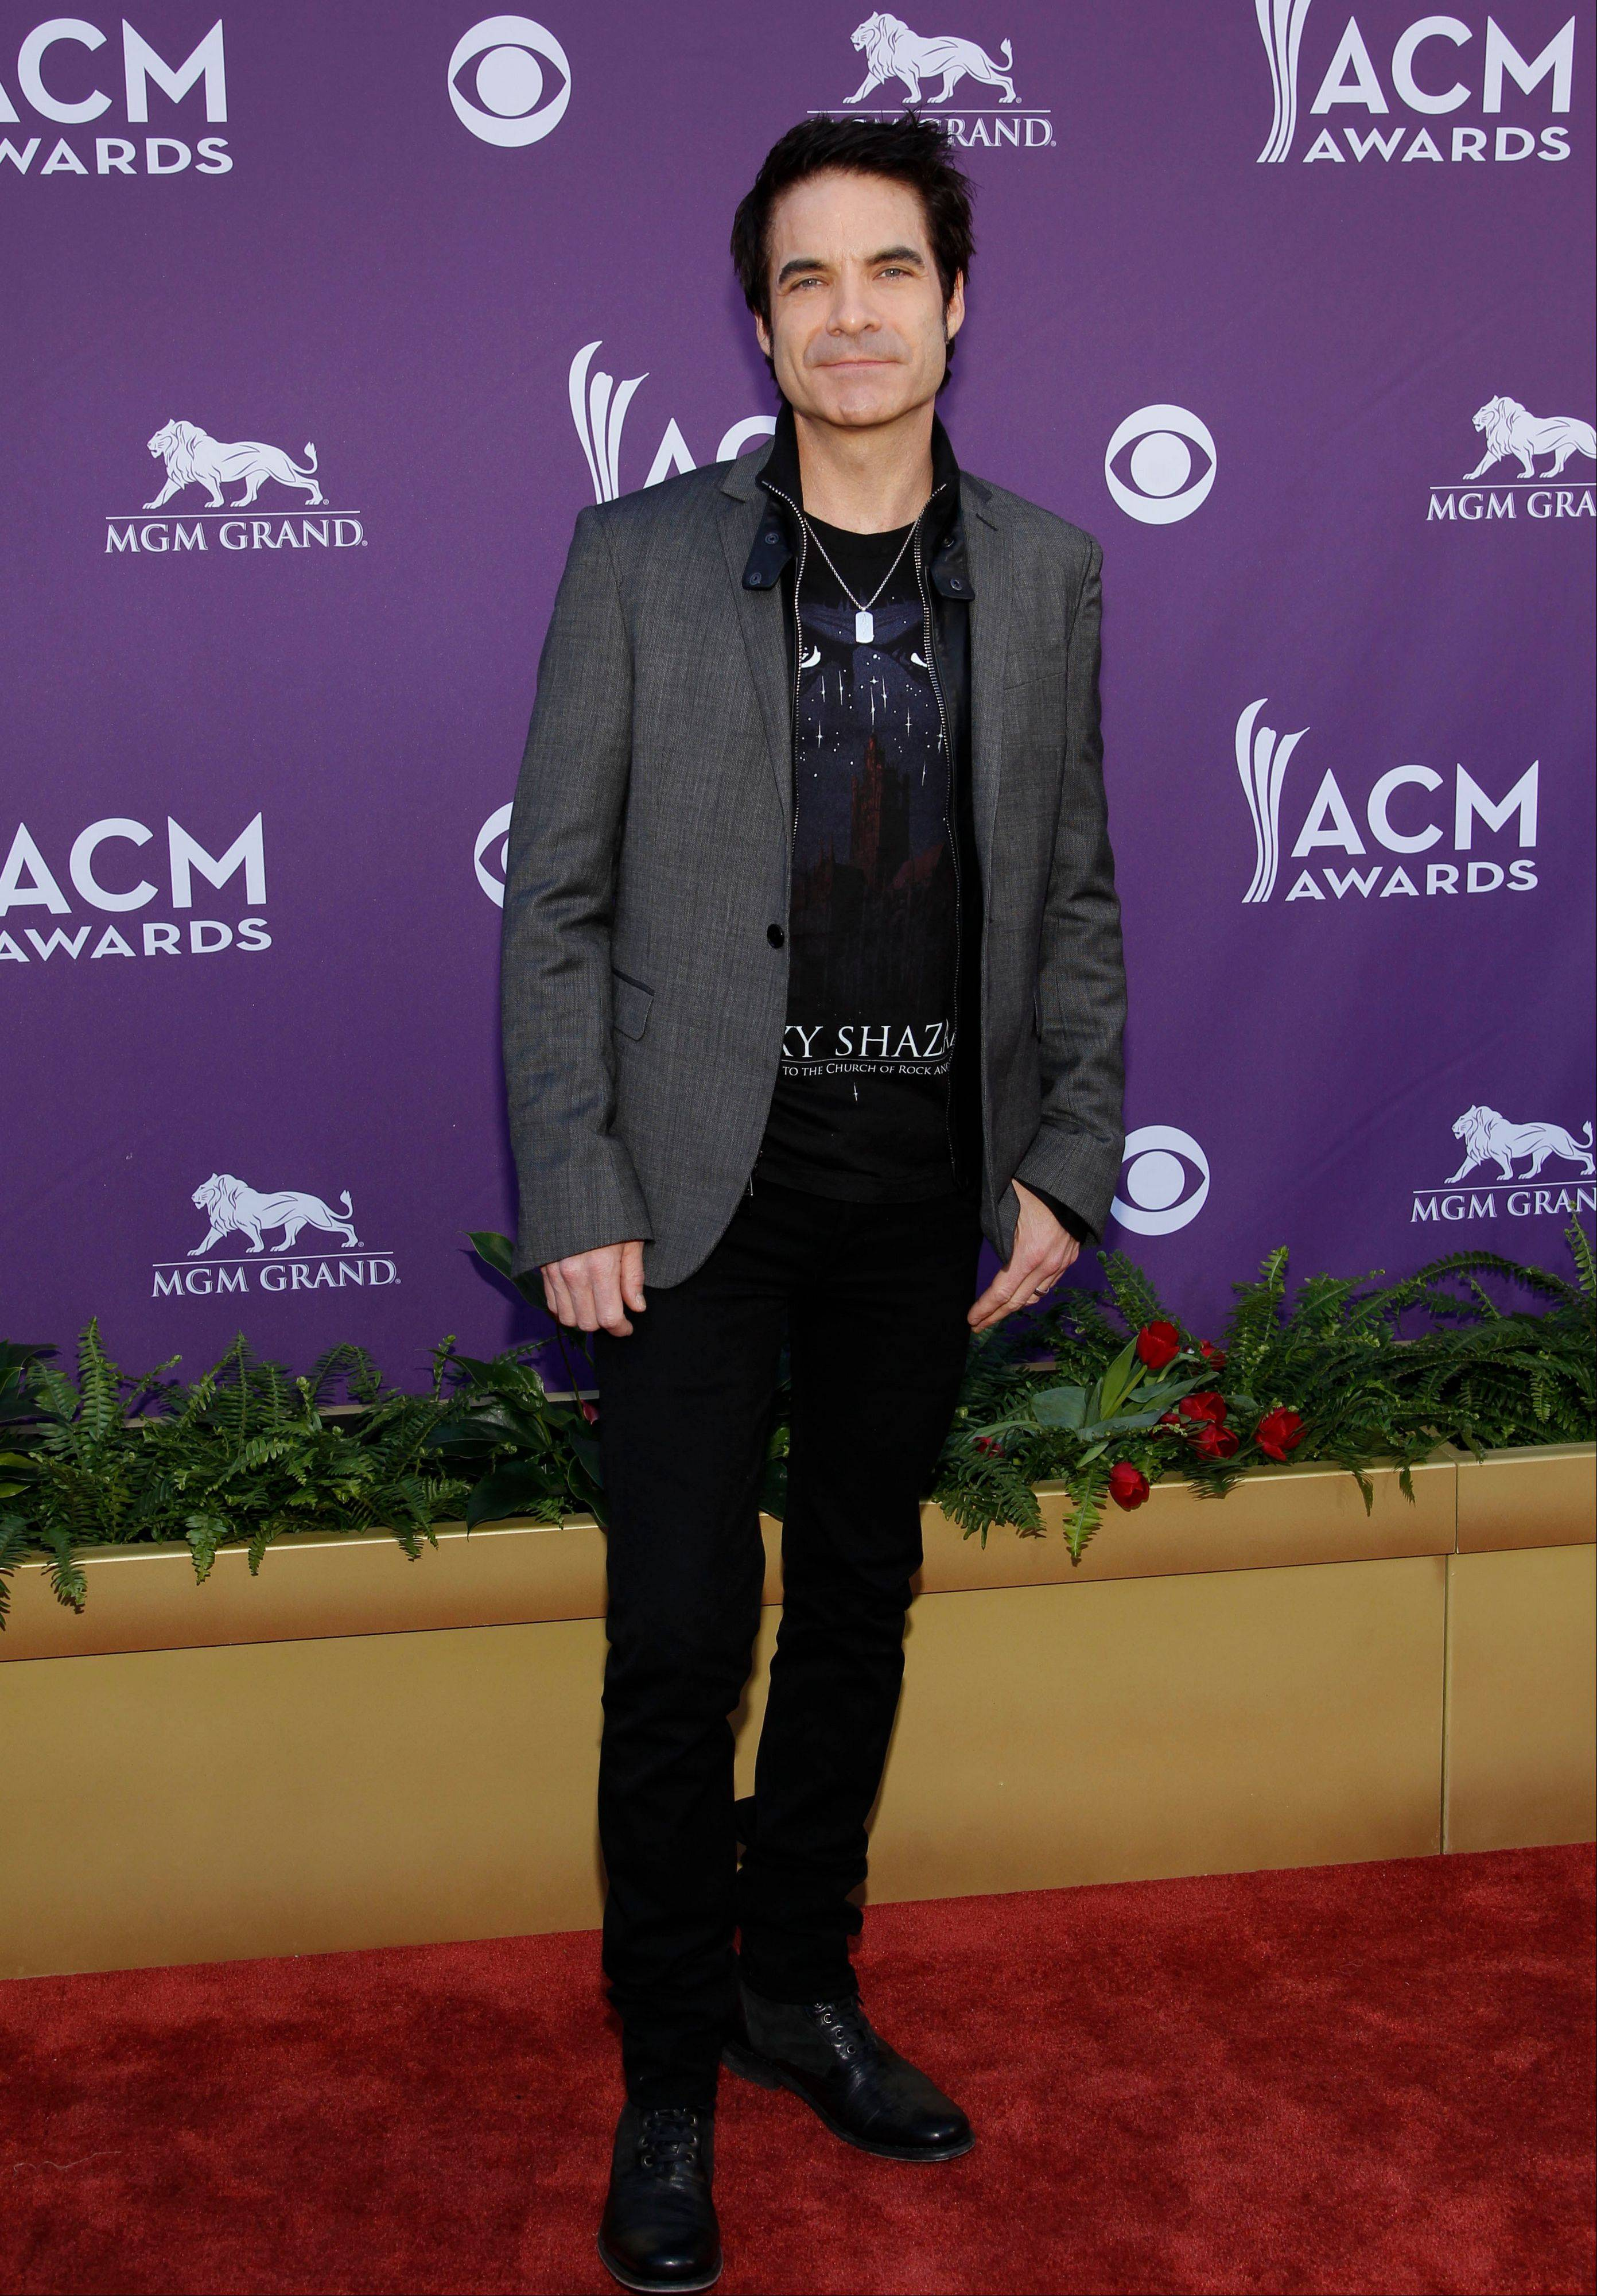 Train lead singer Pat Monahan arrives at the 47th Annual Academy of Country Music Awards on Sunday in Las Vegas.